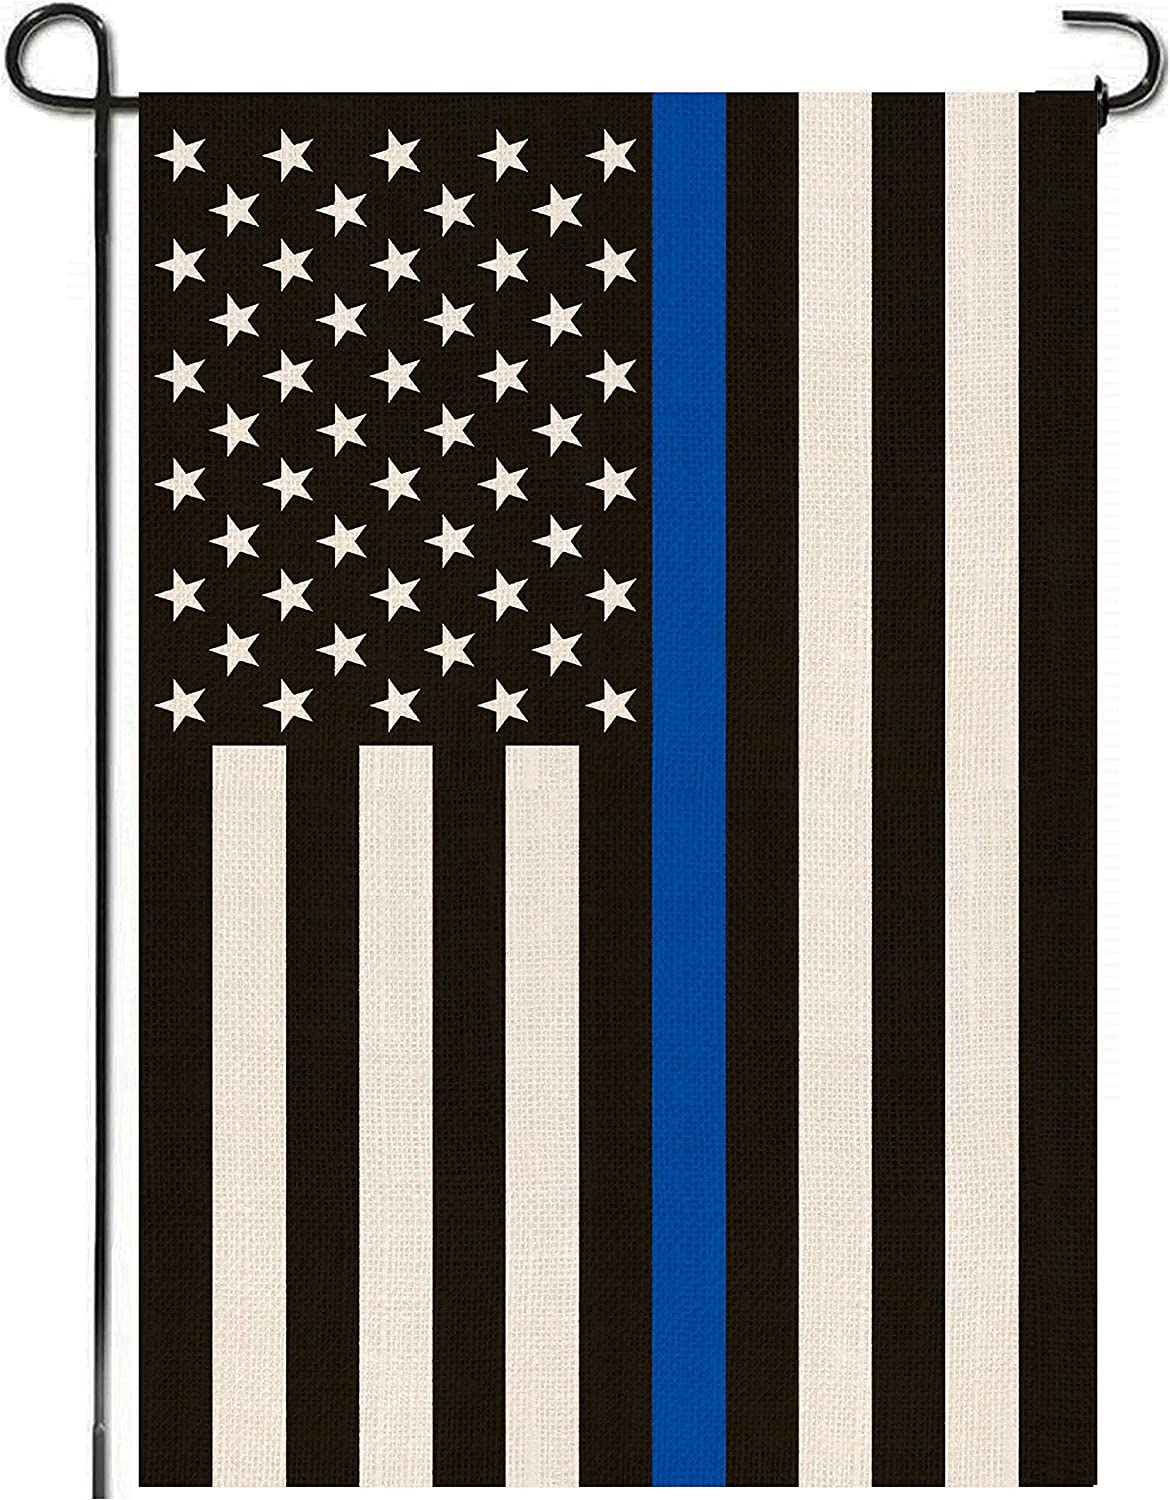 Mogarden Thin Blue Line USA Garden Flag, Double Sided, 12.5 x 18 Inches, Honoring Law Enforcement Officers, Back The Blue, Blue Lives Matters, Thick Weatherproof Burlap American Police Yard Flag